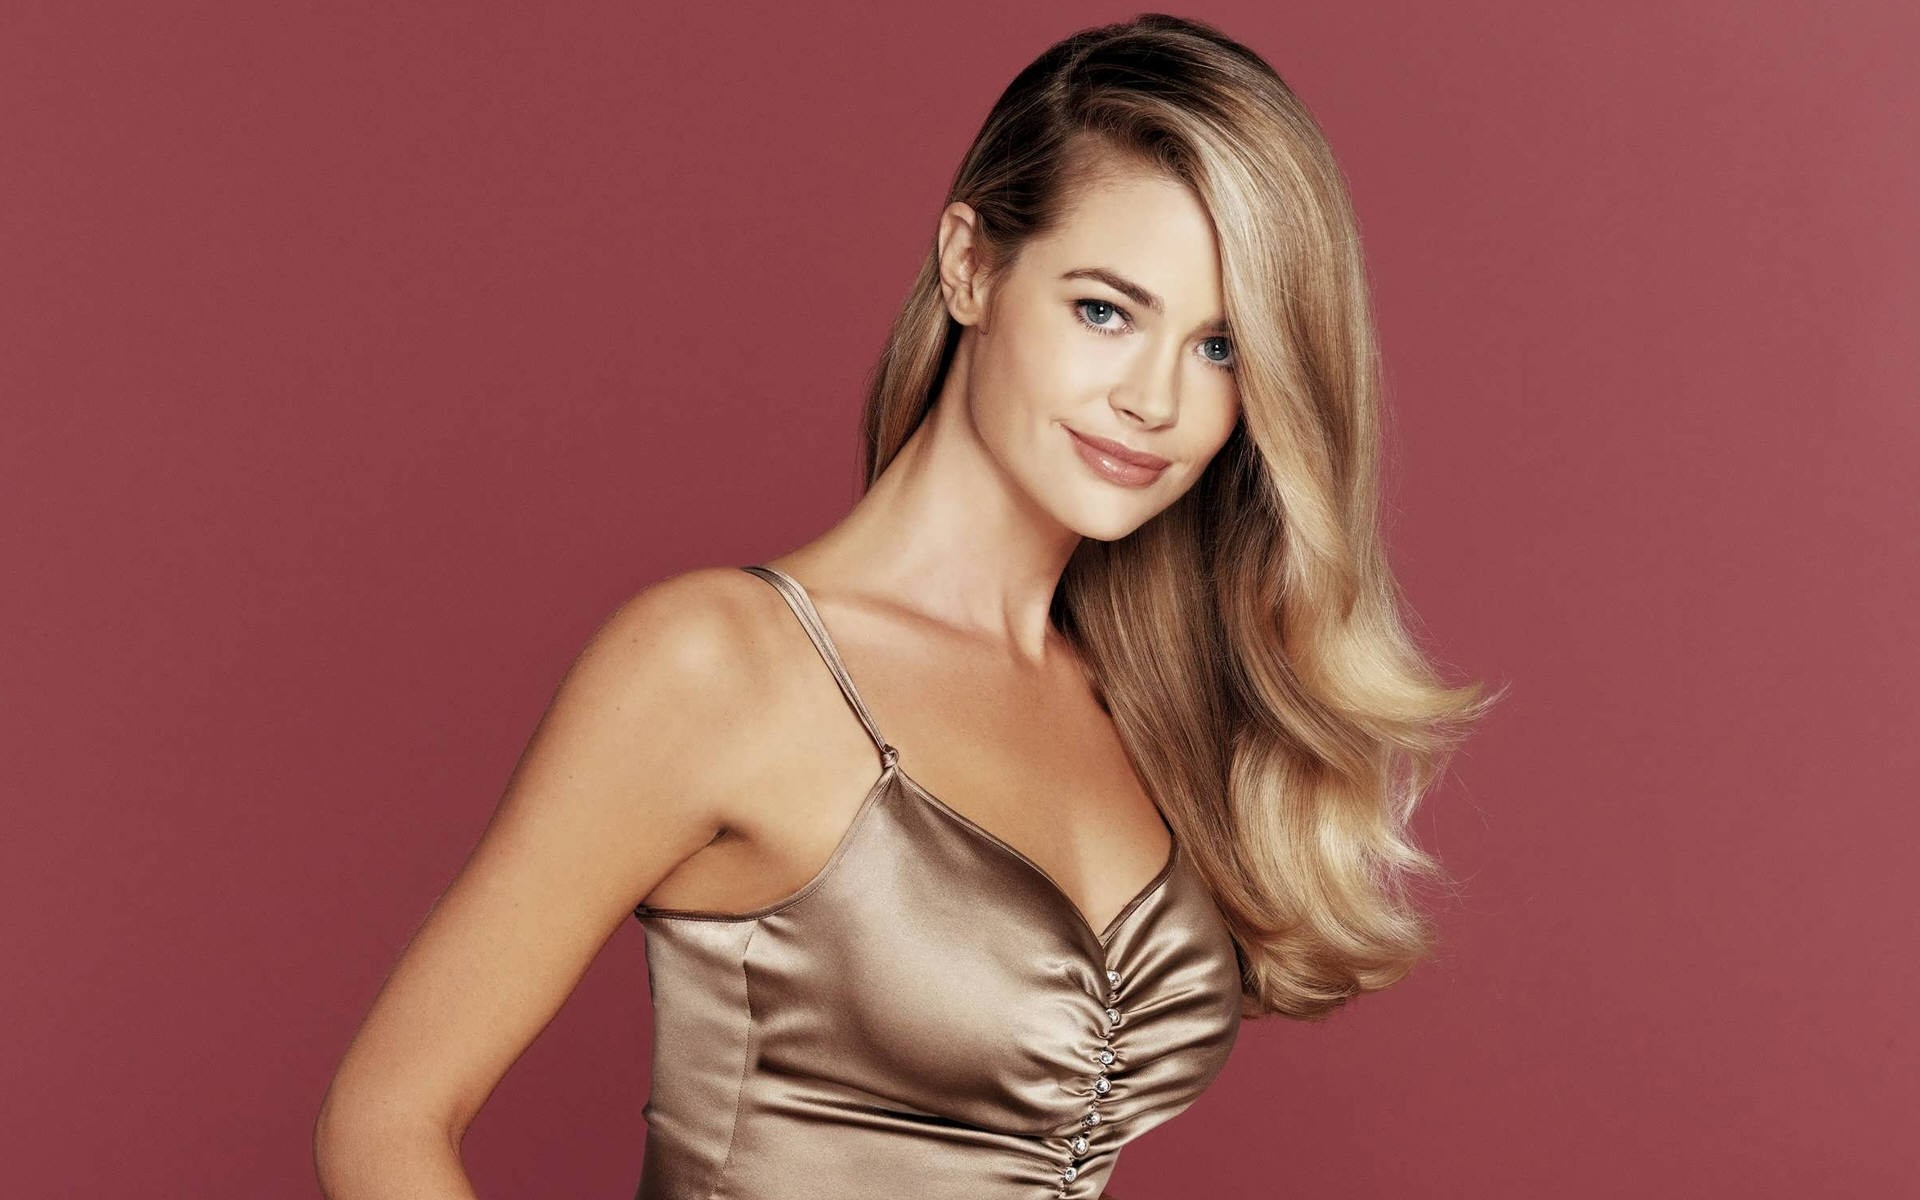 denise richards 1920x1200 wallpapers - photo #5